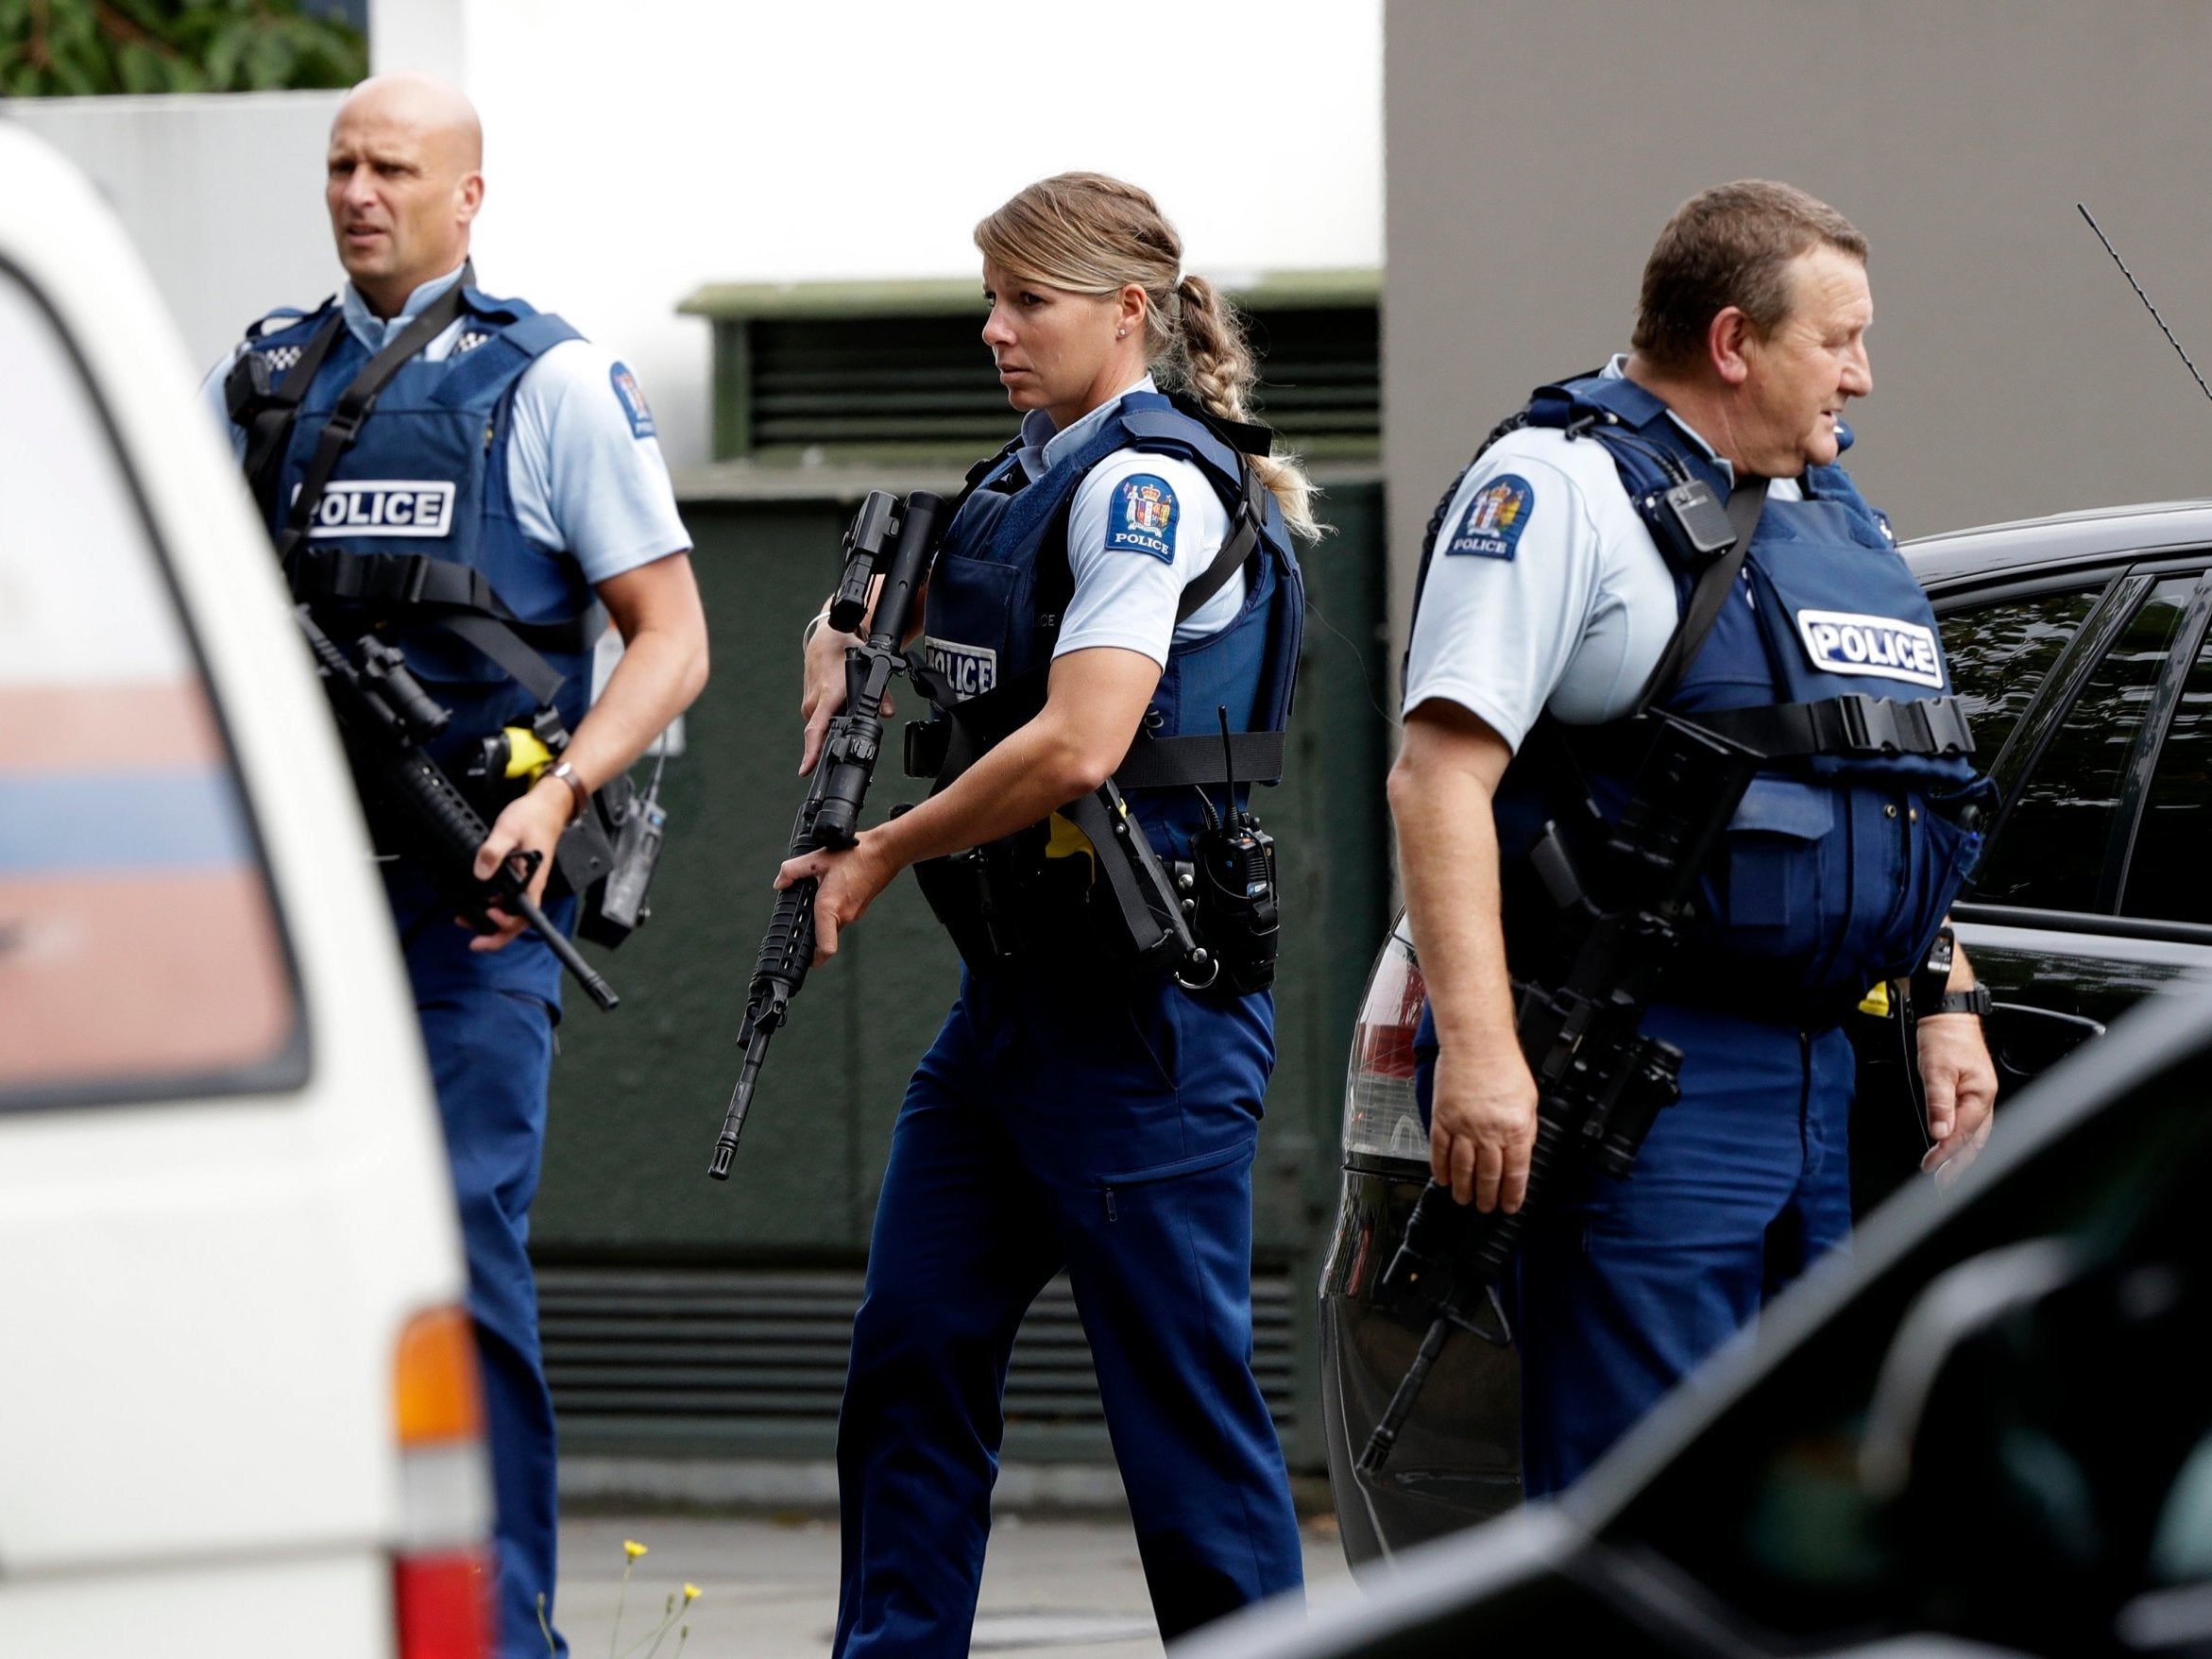 New Zealand Mosque Attack Photo: New Zealand Mosque Attack: Armed Police Deployed In